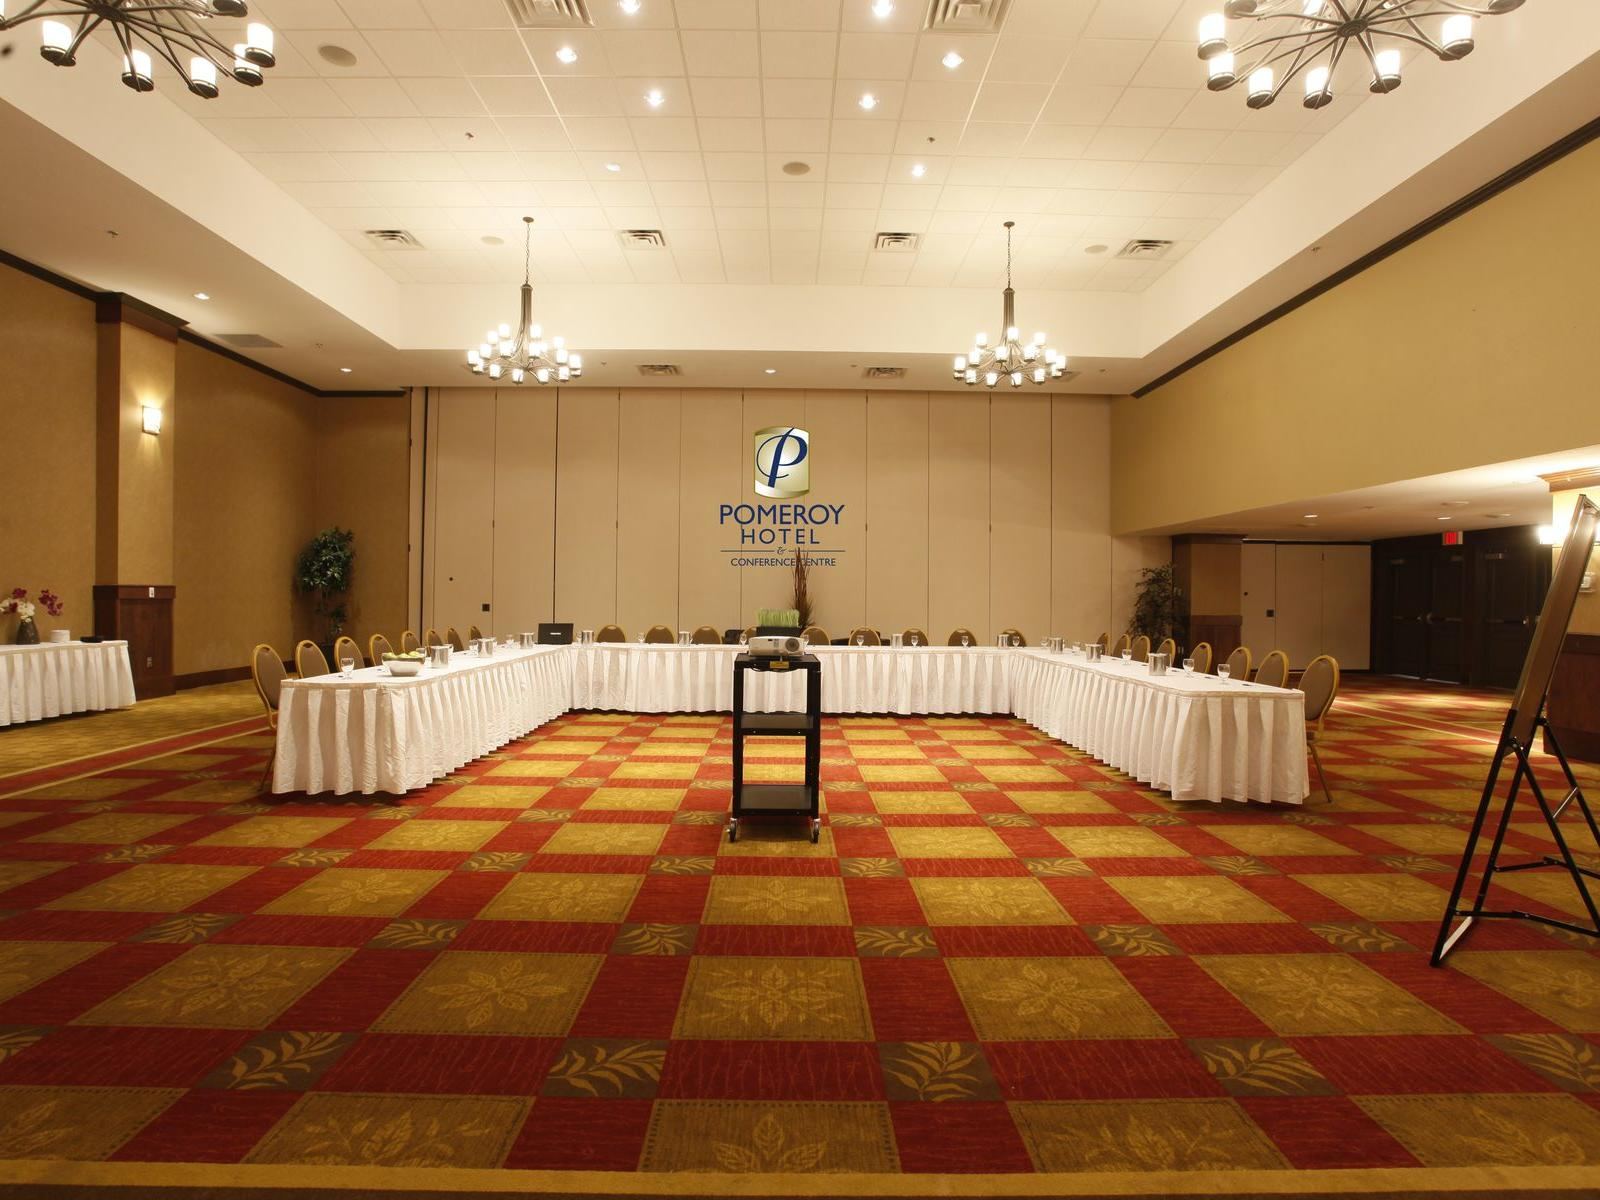 a u-shapped conference table